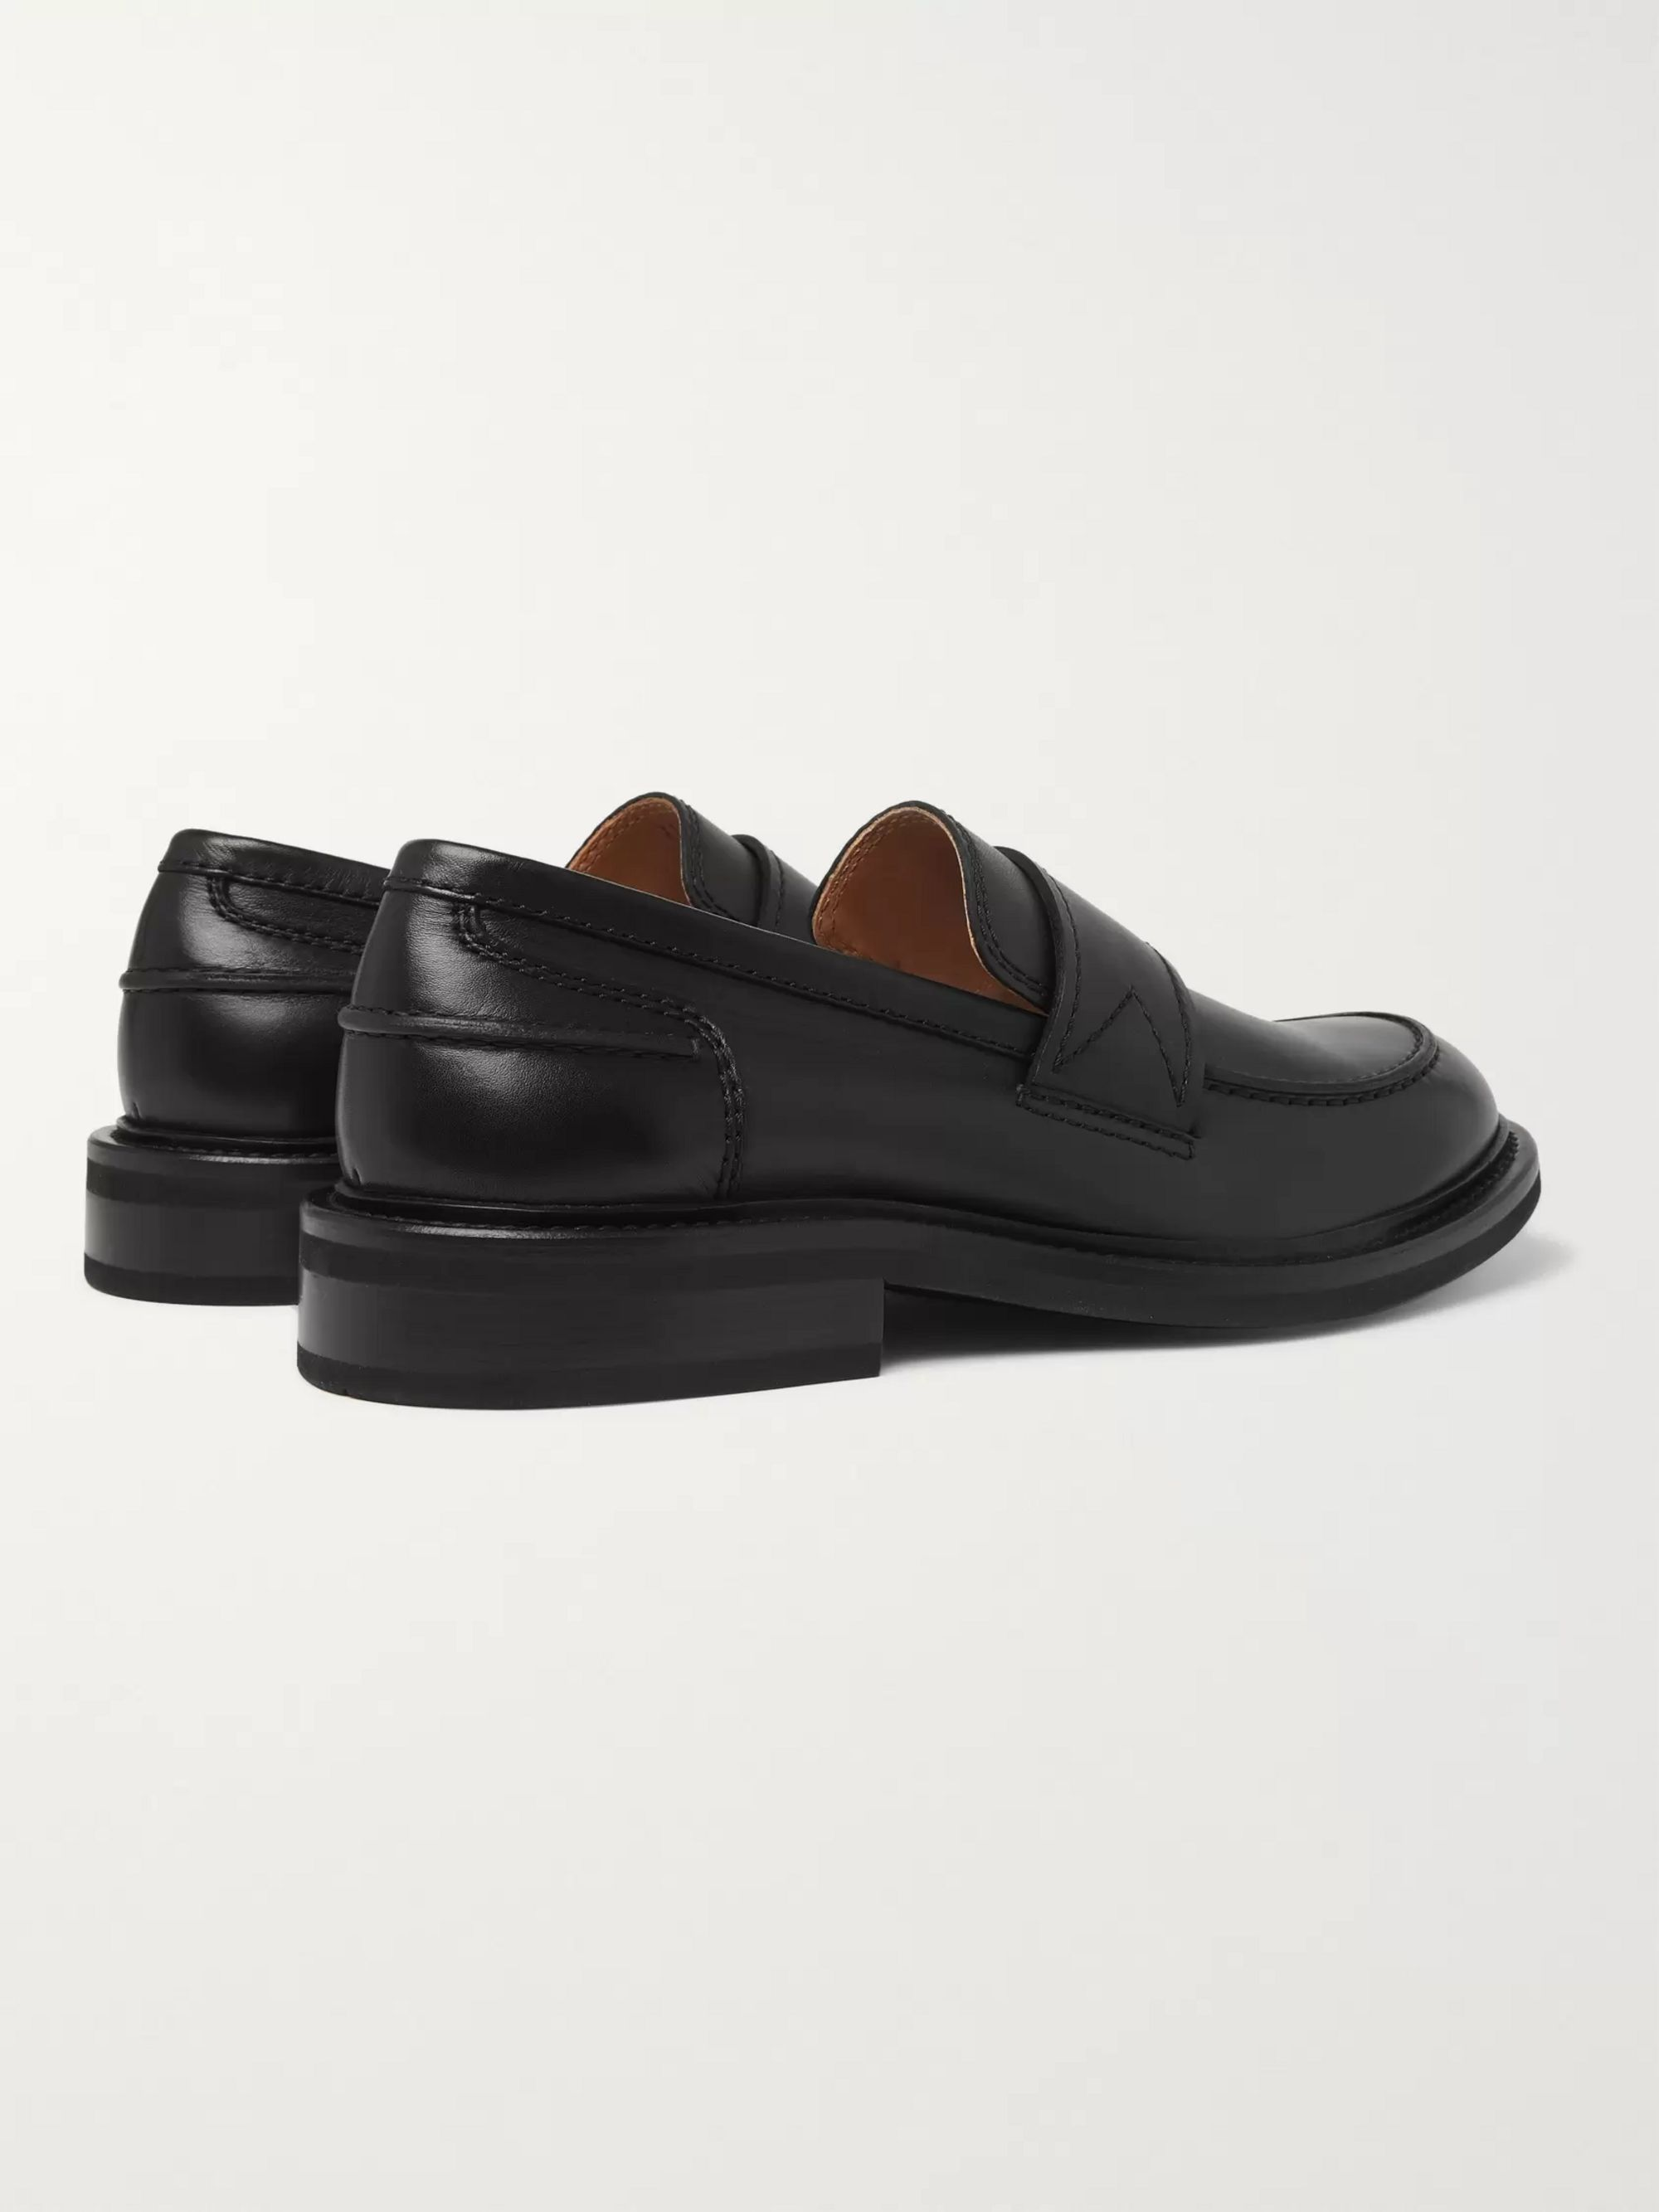 Bottega Veneta Leather Penny Loafers